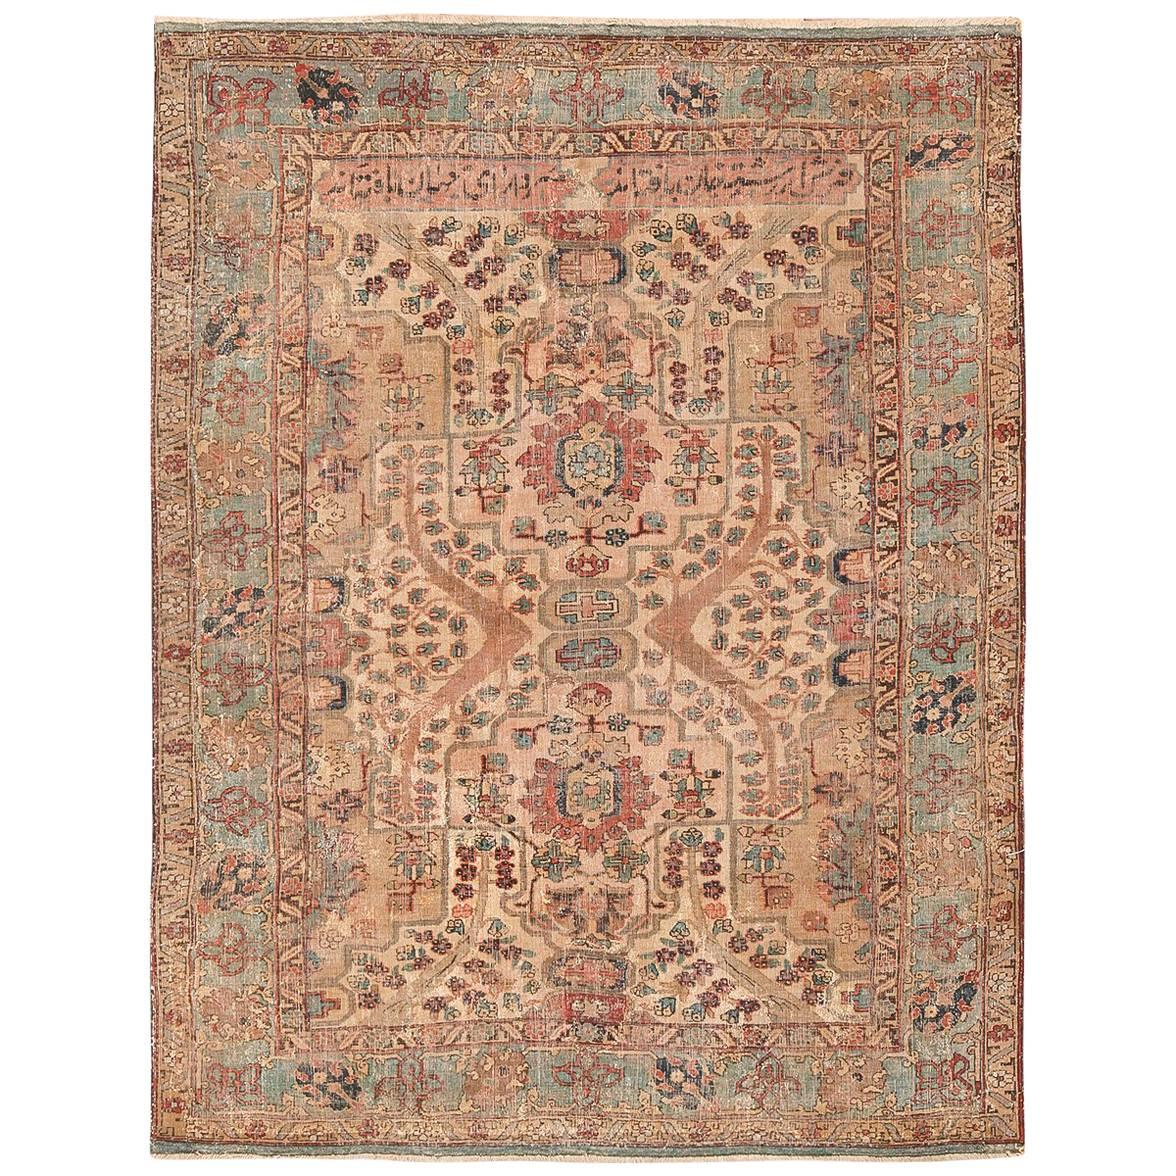 17th Century Small Size Persian Khorassan Rug. Size: 4 ft 5 in x 5 ft 9 in